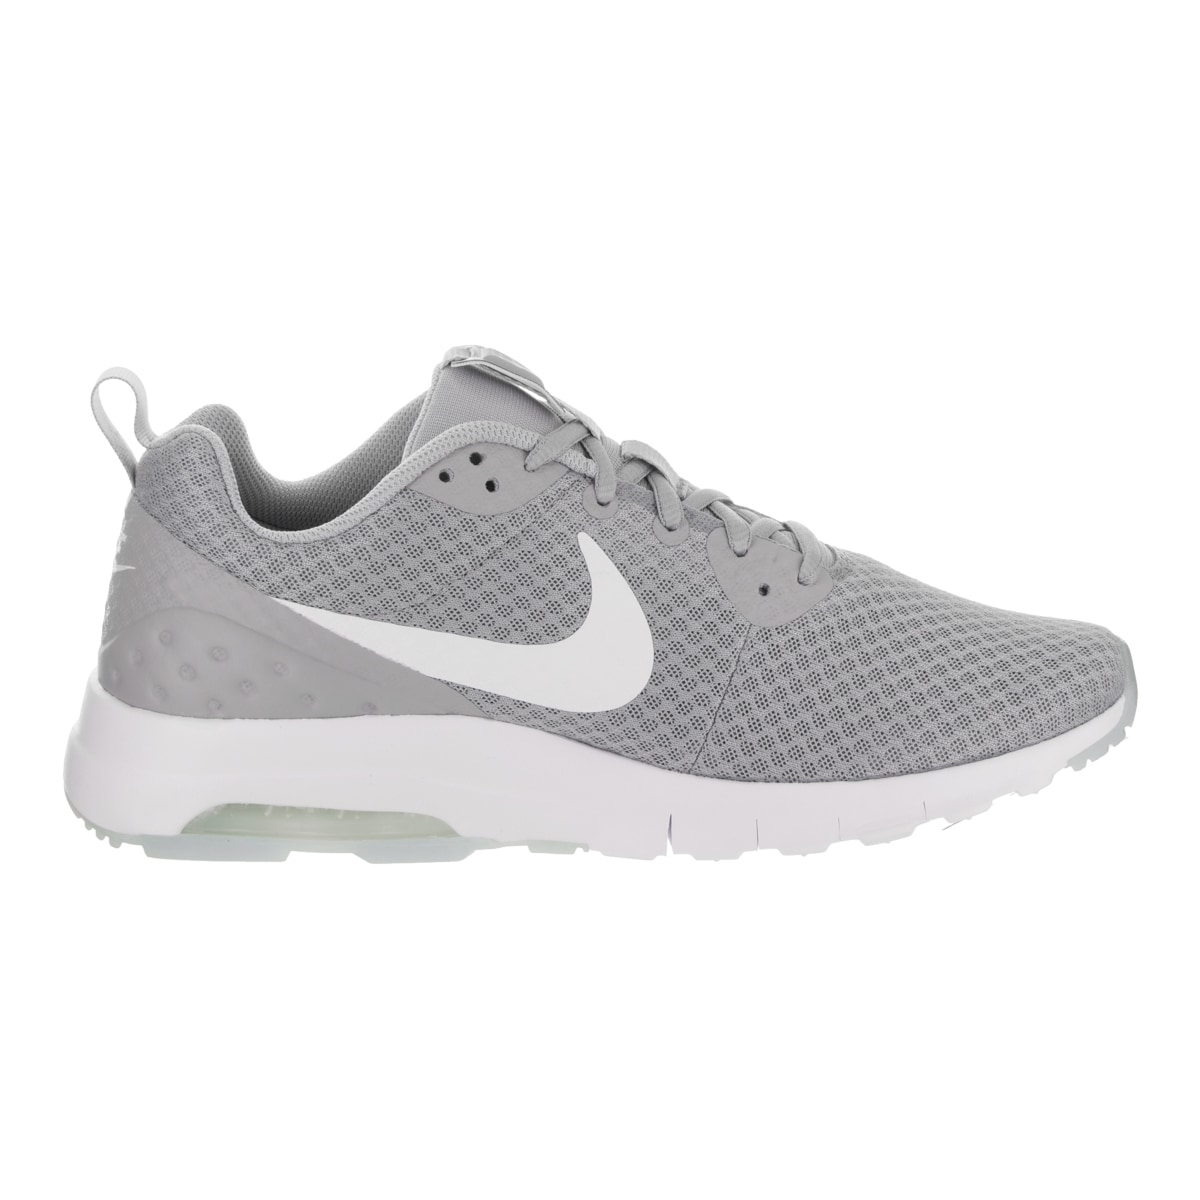 Shop Nike Men s Air Max Motion Lw Grey Synthetic Leather Running Shoes -  Free Shipping Today - Overstock - 16006290 5f46409b8